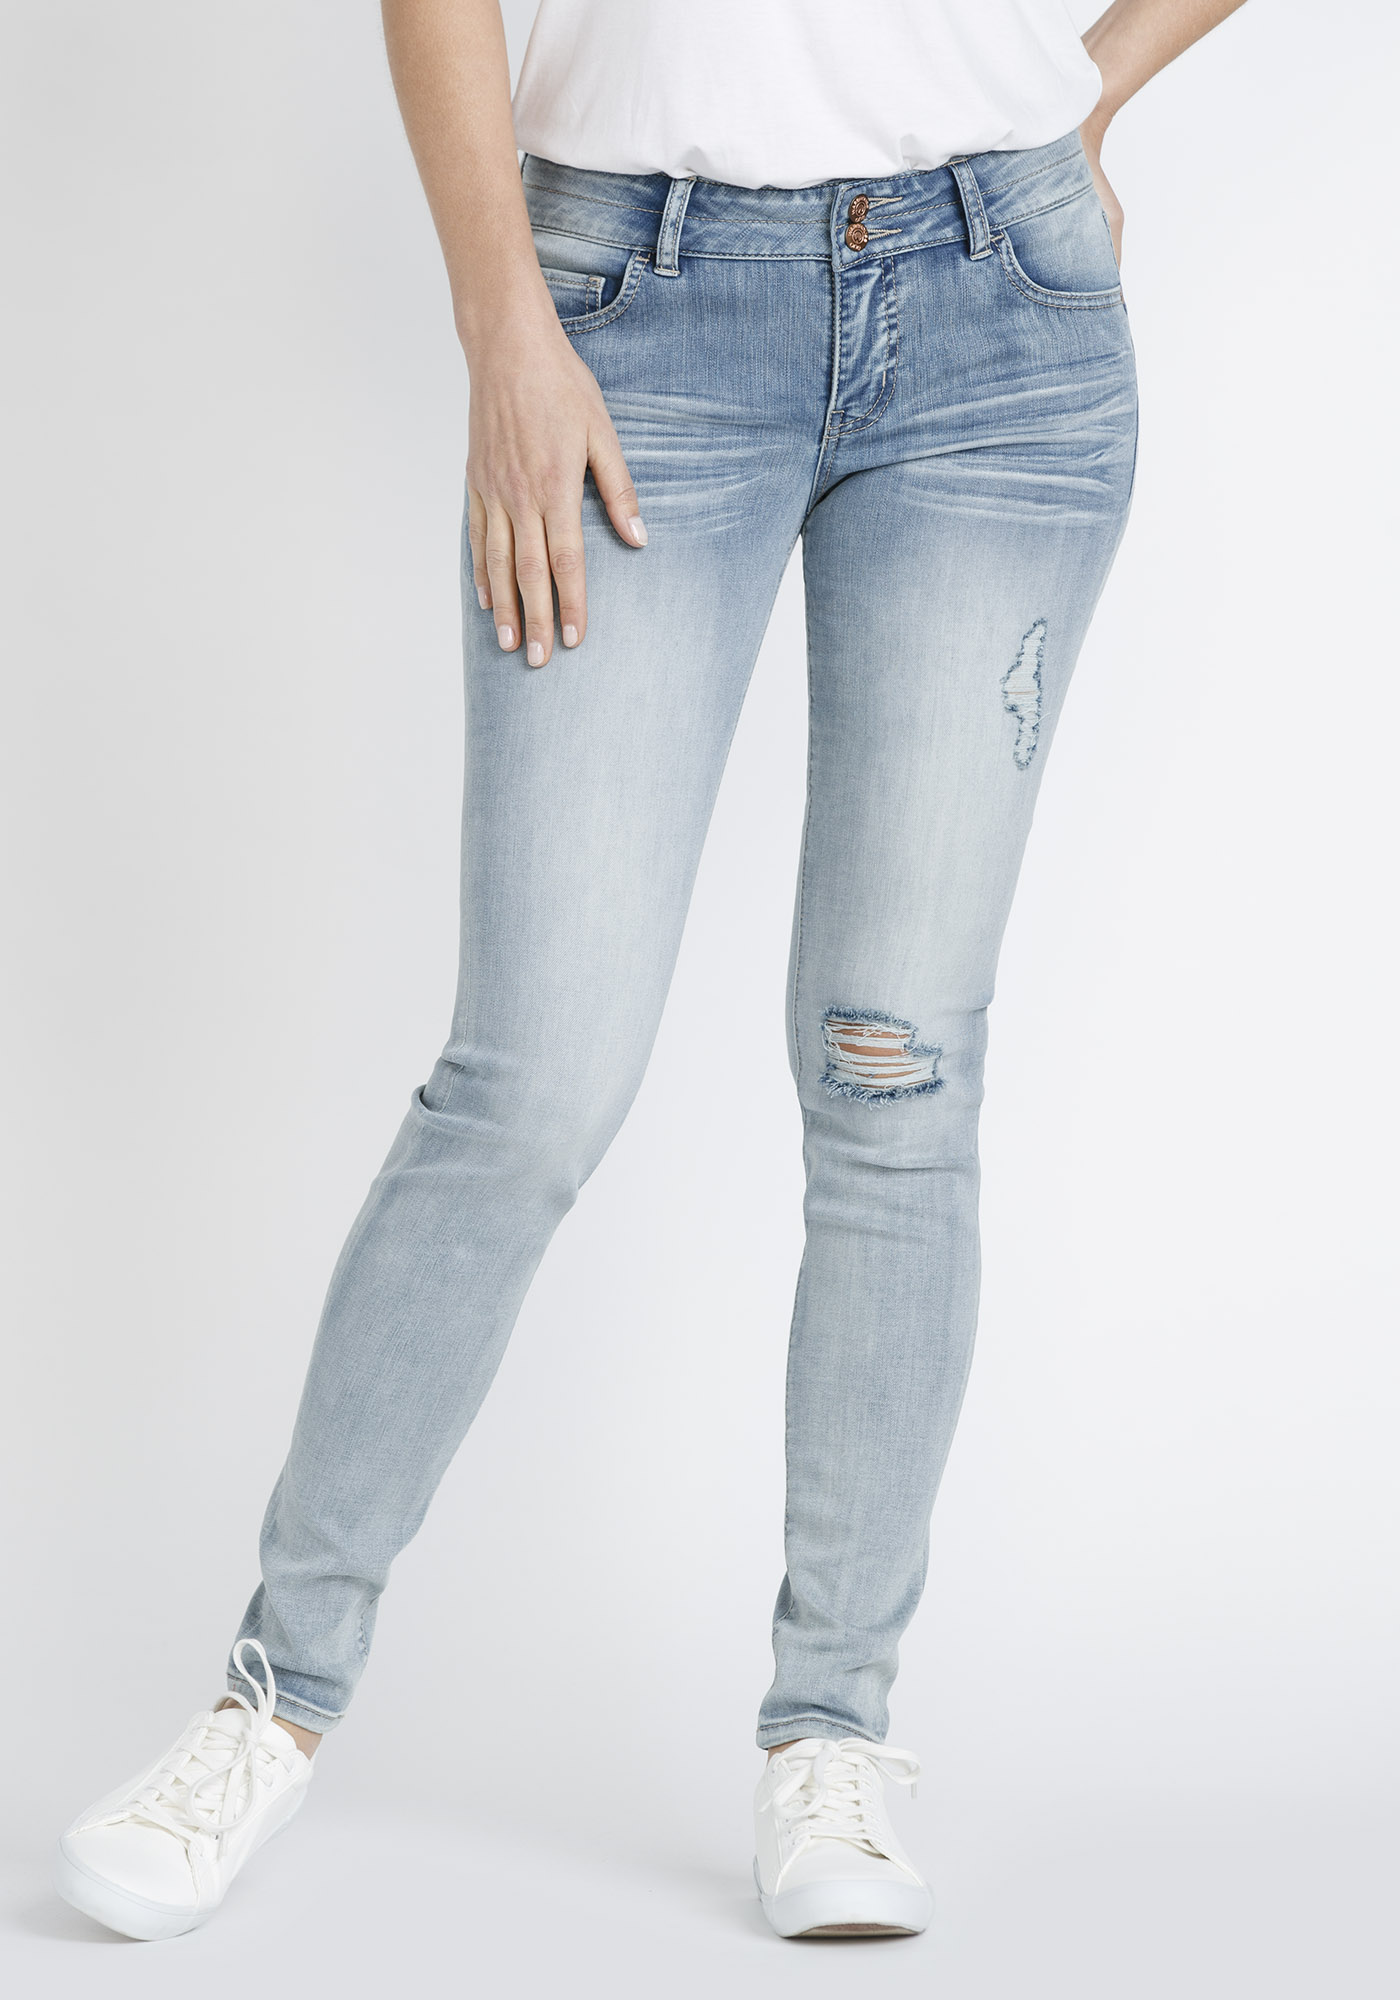 Women's Bleach Wash Distressed Skinny Jeans, LIGHT WASH, hi-res